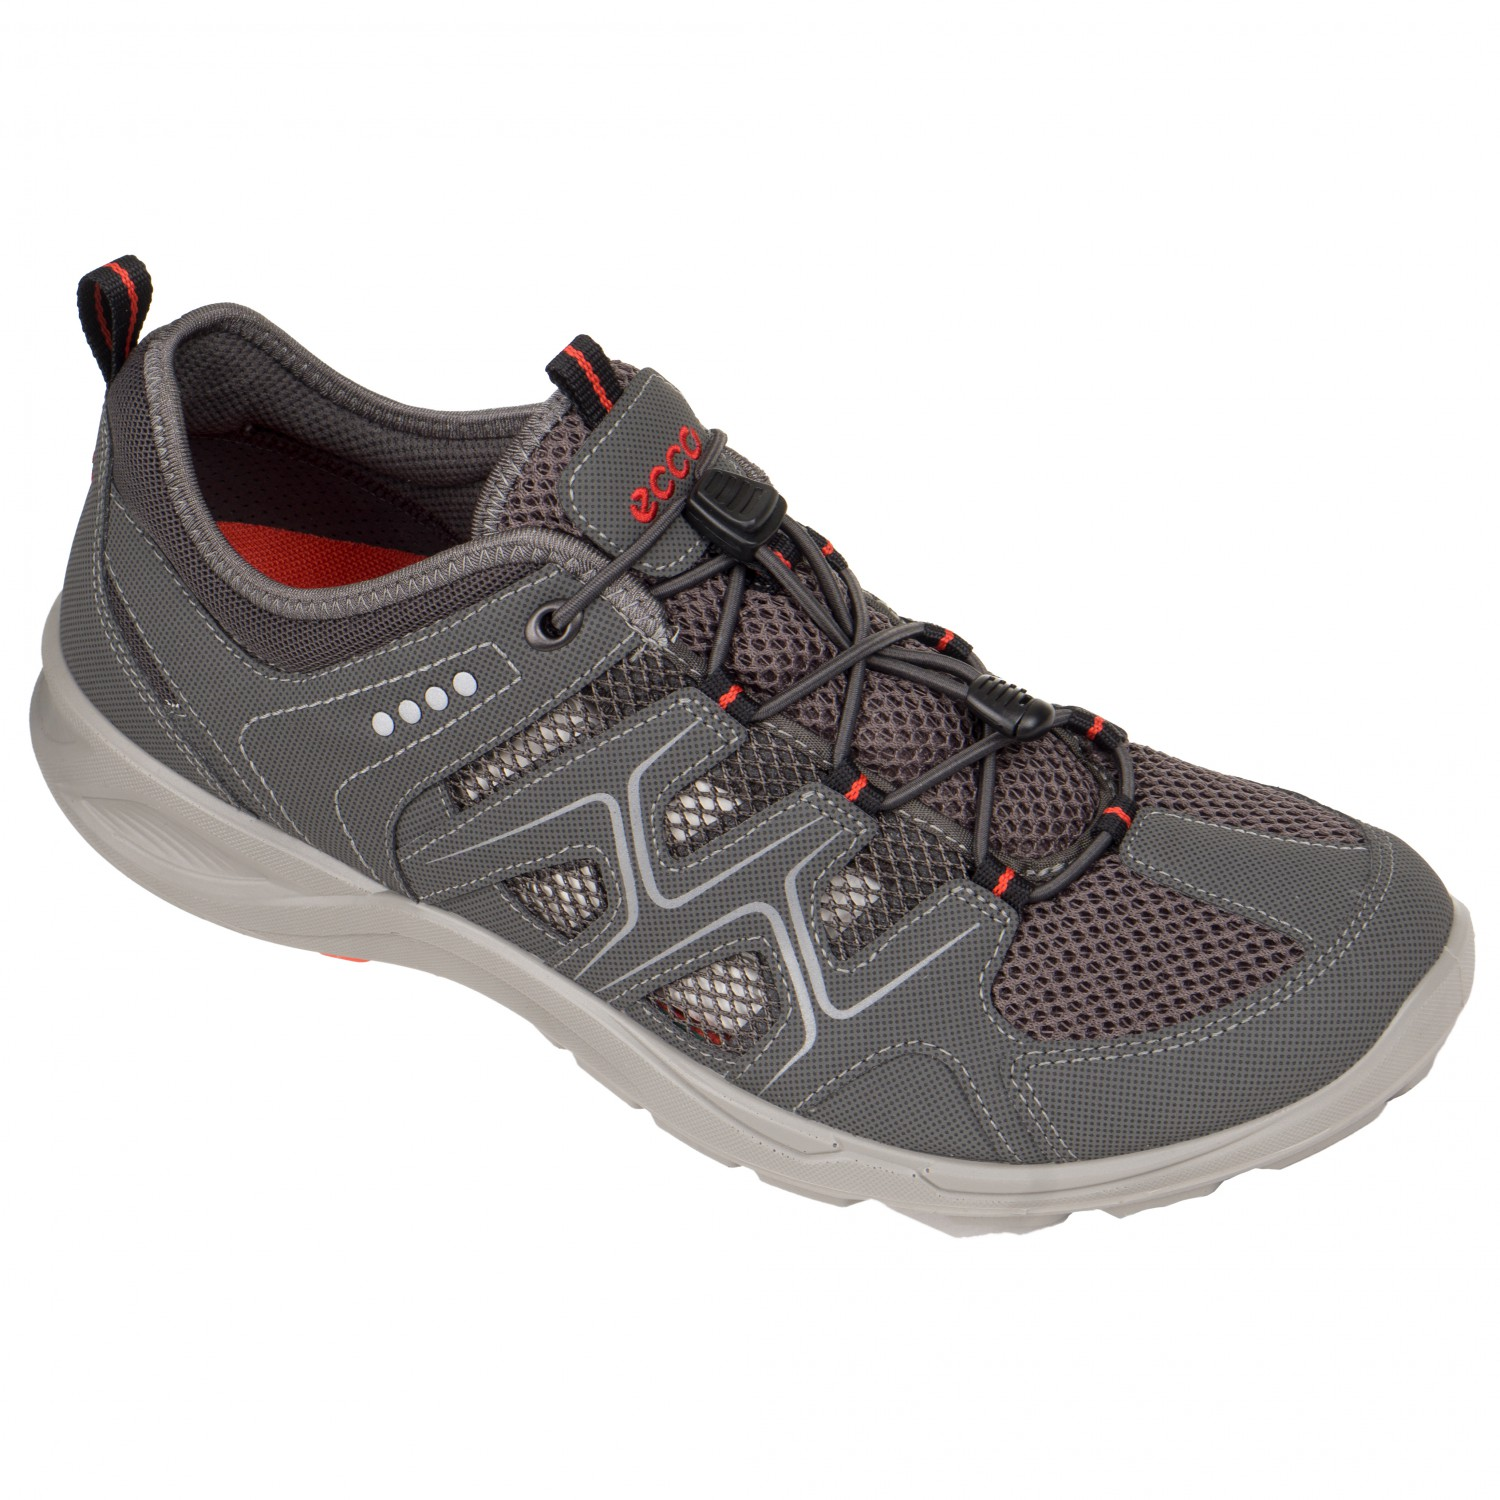 Ecco - Terracruise Lite - Sneaker Dark Shadow / Dark Shadow